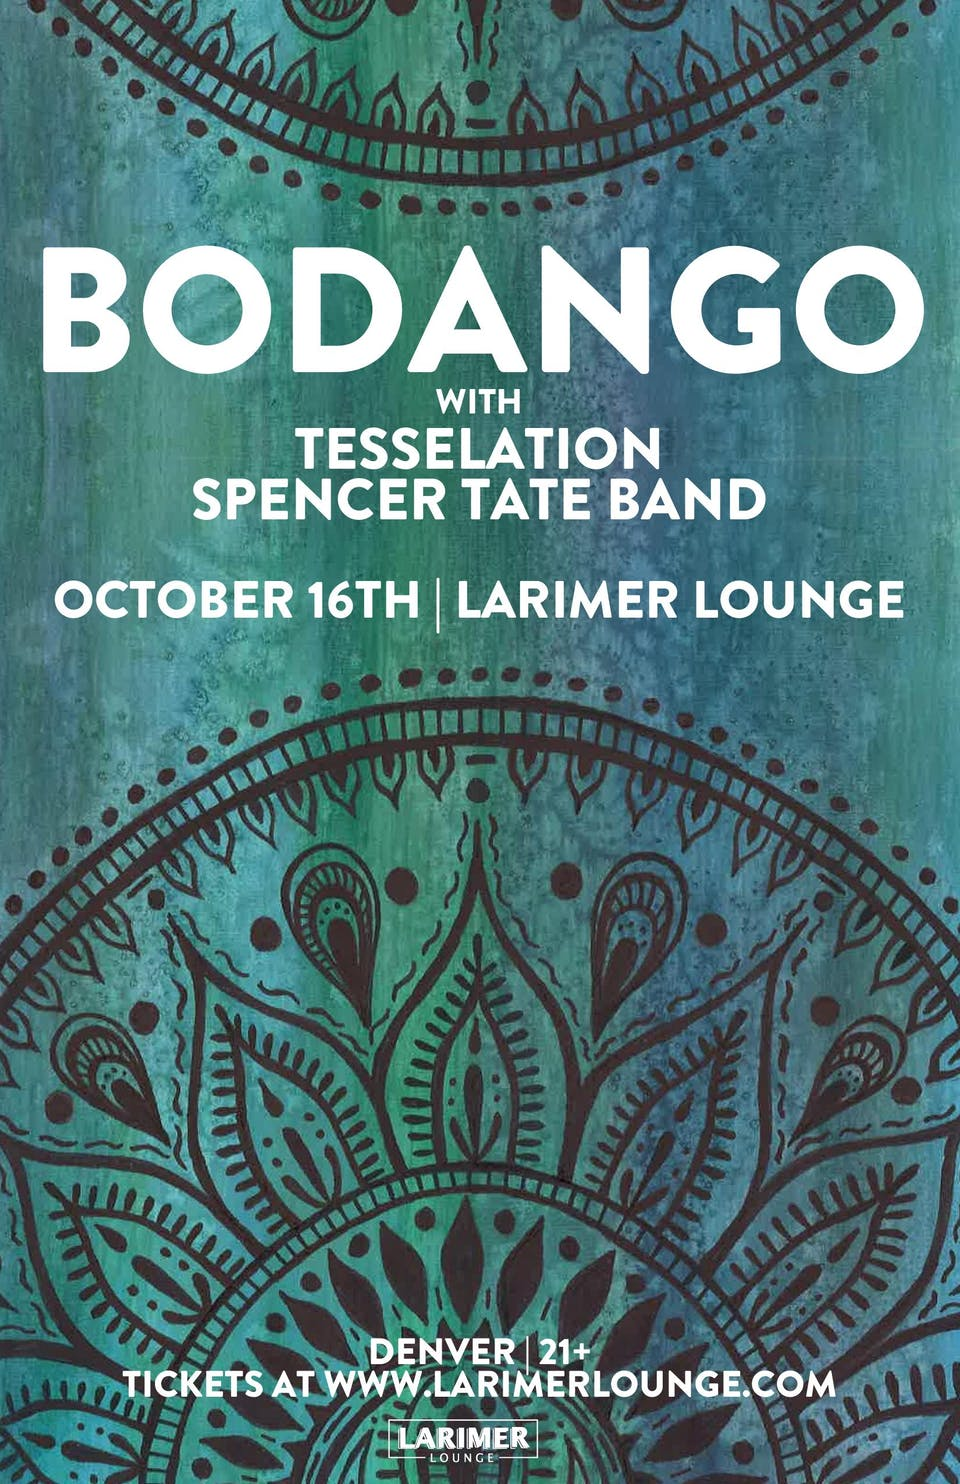 Bodango / Tesselation / Spencer Tate Band